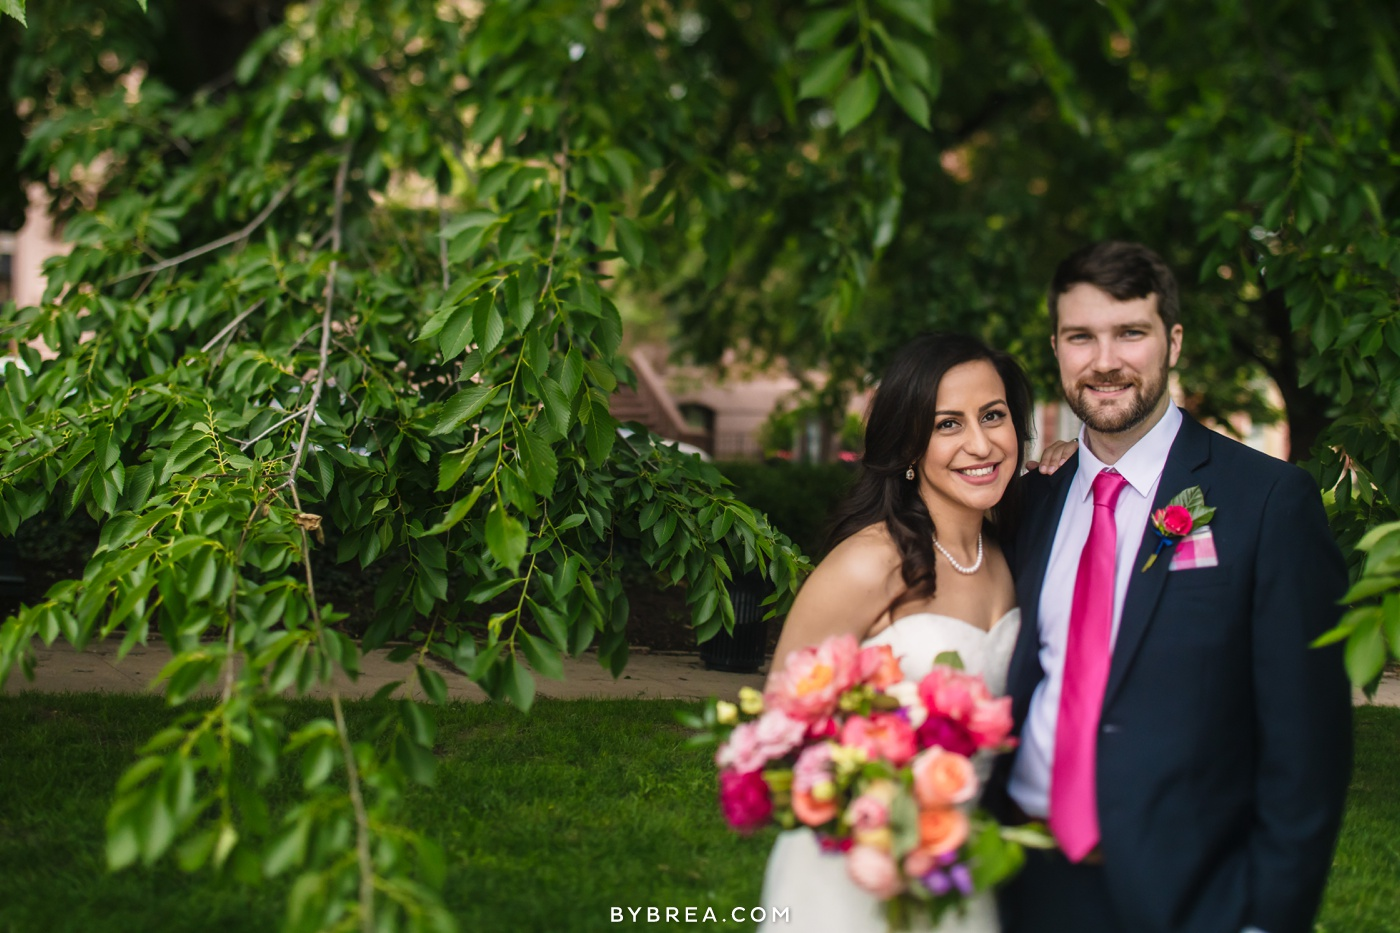 George Peabody Library wedding photo bride and groom portrait bouquet by The Floral Studio